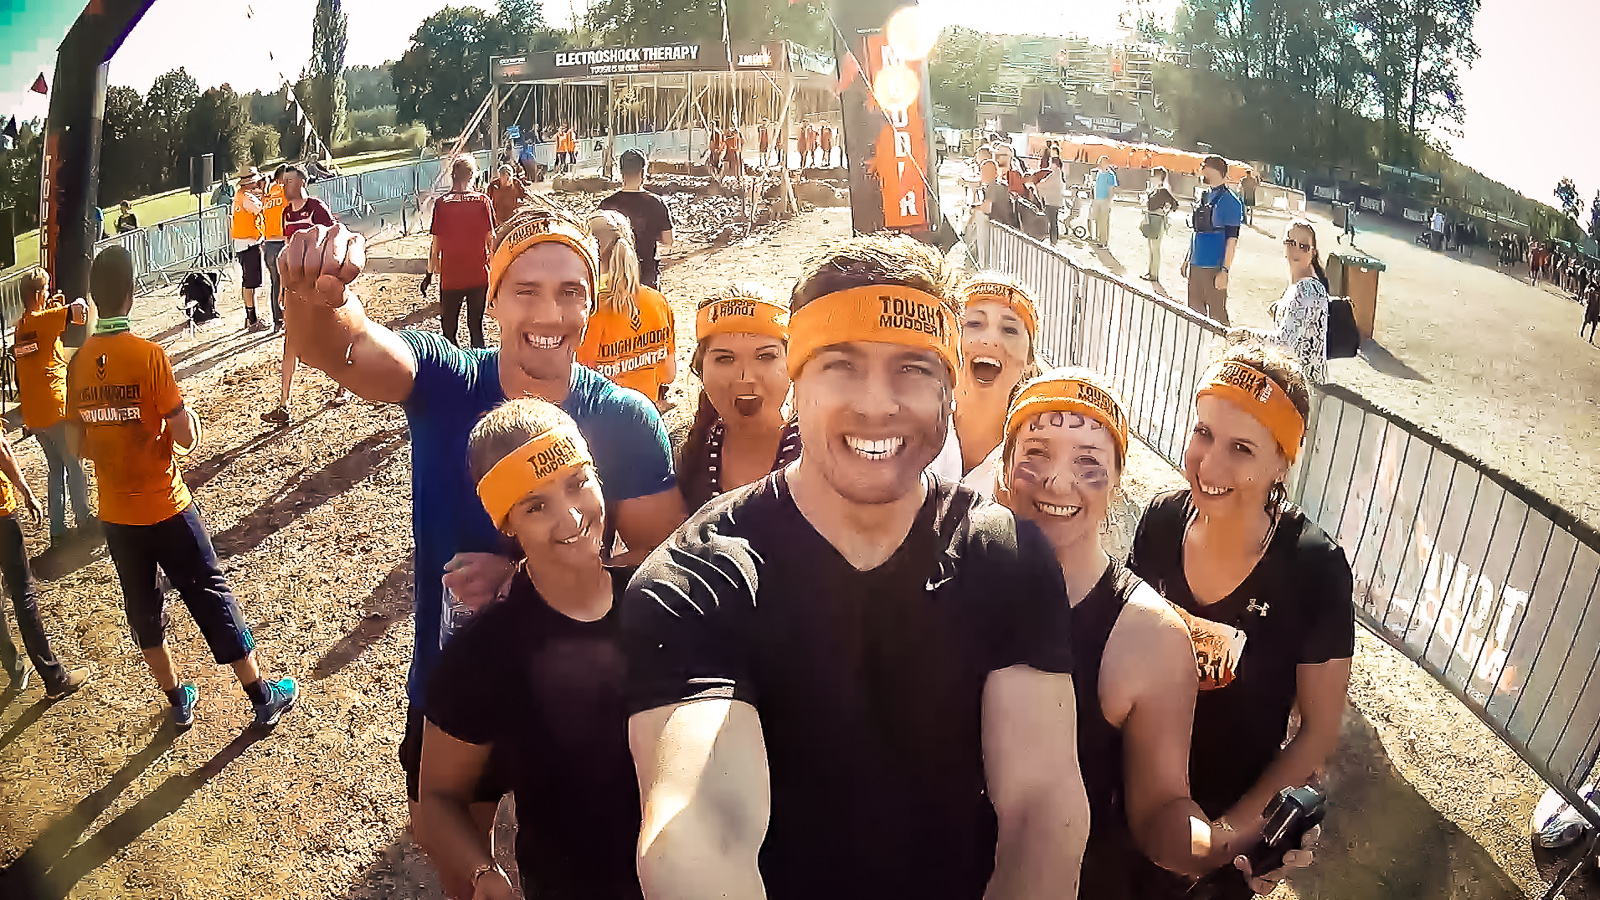 fitnessblog-fitnessblogger-fitness-blog-blogger-stuttgart-dreamteamfitness-tough-mudder-3